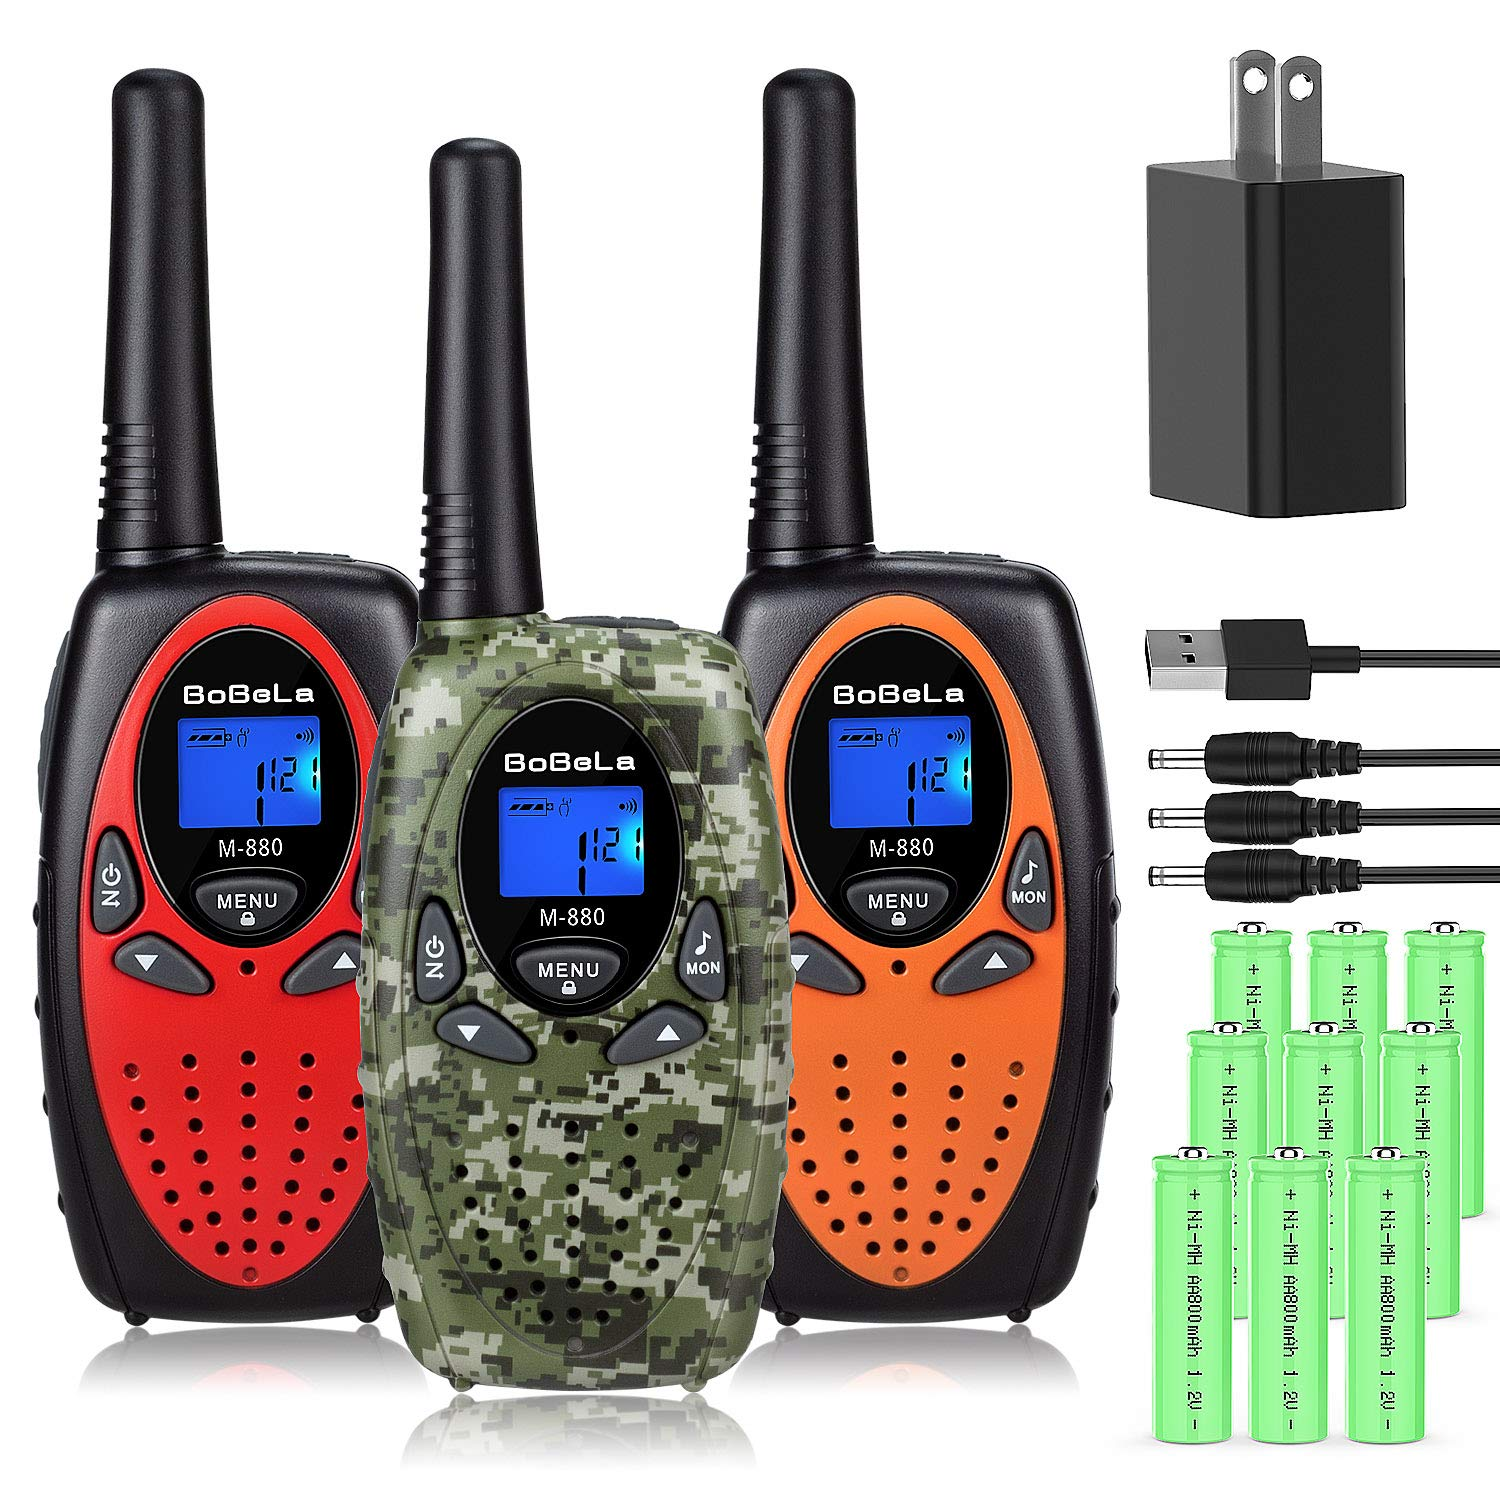 Bobela Walkie Talkies for Kids Rechargeable with Charger and Battery, 22 Channels Long Range 2 Way Radio Walky Talky for Adults and Kids, Easy Use for Cruise Ship, Traveling, Camping, Hiking(3 Pack) by Bobela (Image #1)